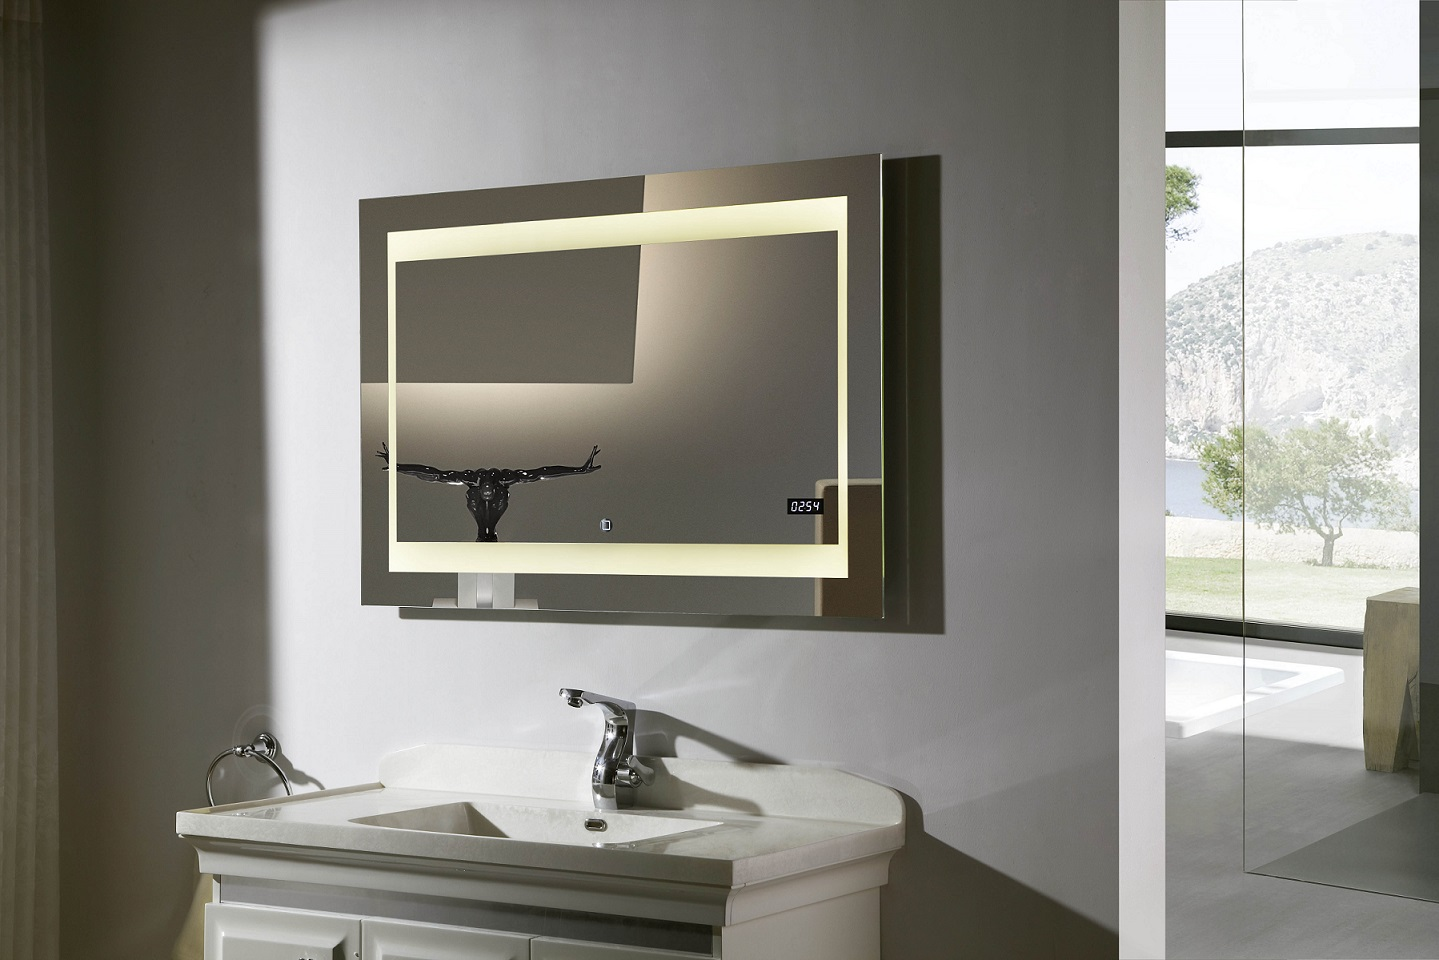 zen ii lighted vanity mirror led bathroom mirror horizontal 39 4 x 27